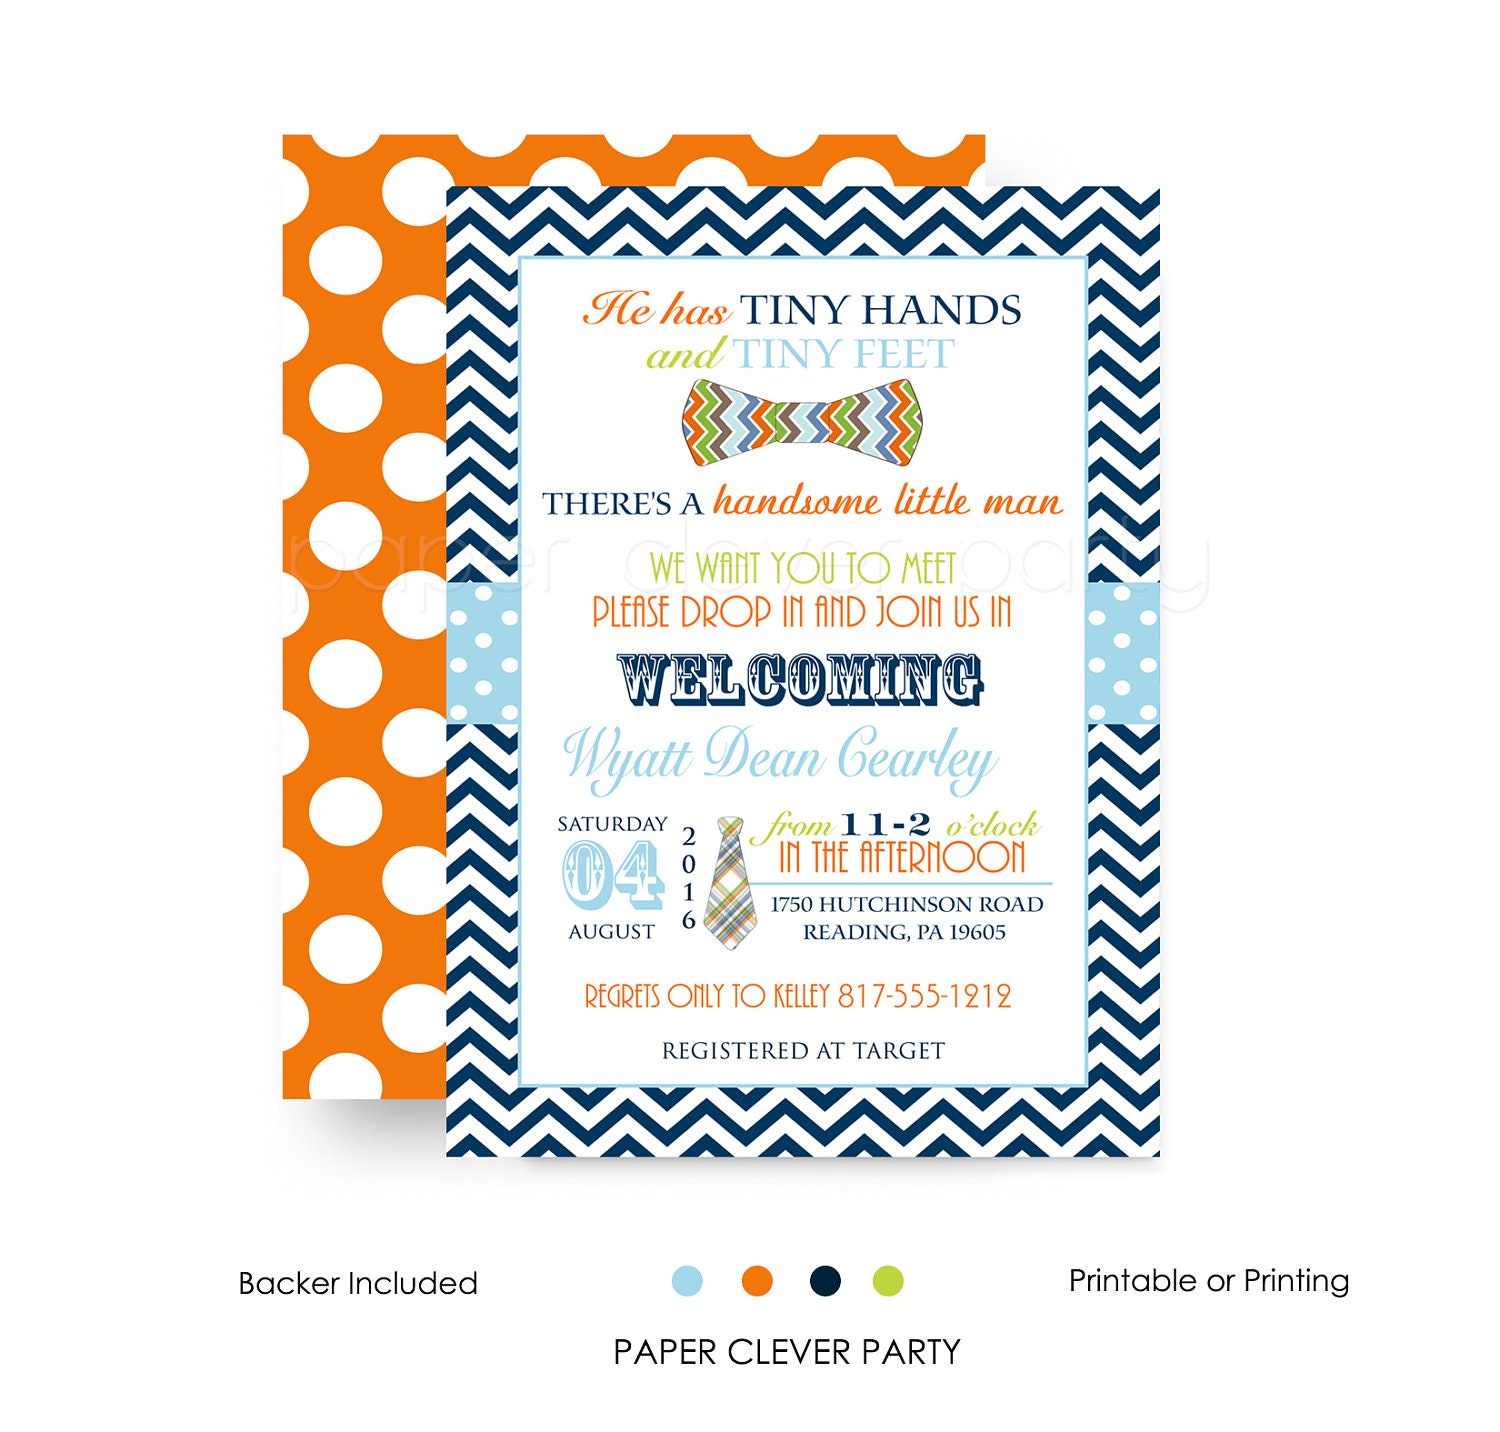 Bow tie sip see baby invitations boys navy and orange chevron shipping m4hsunfo